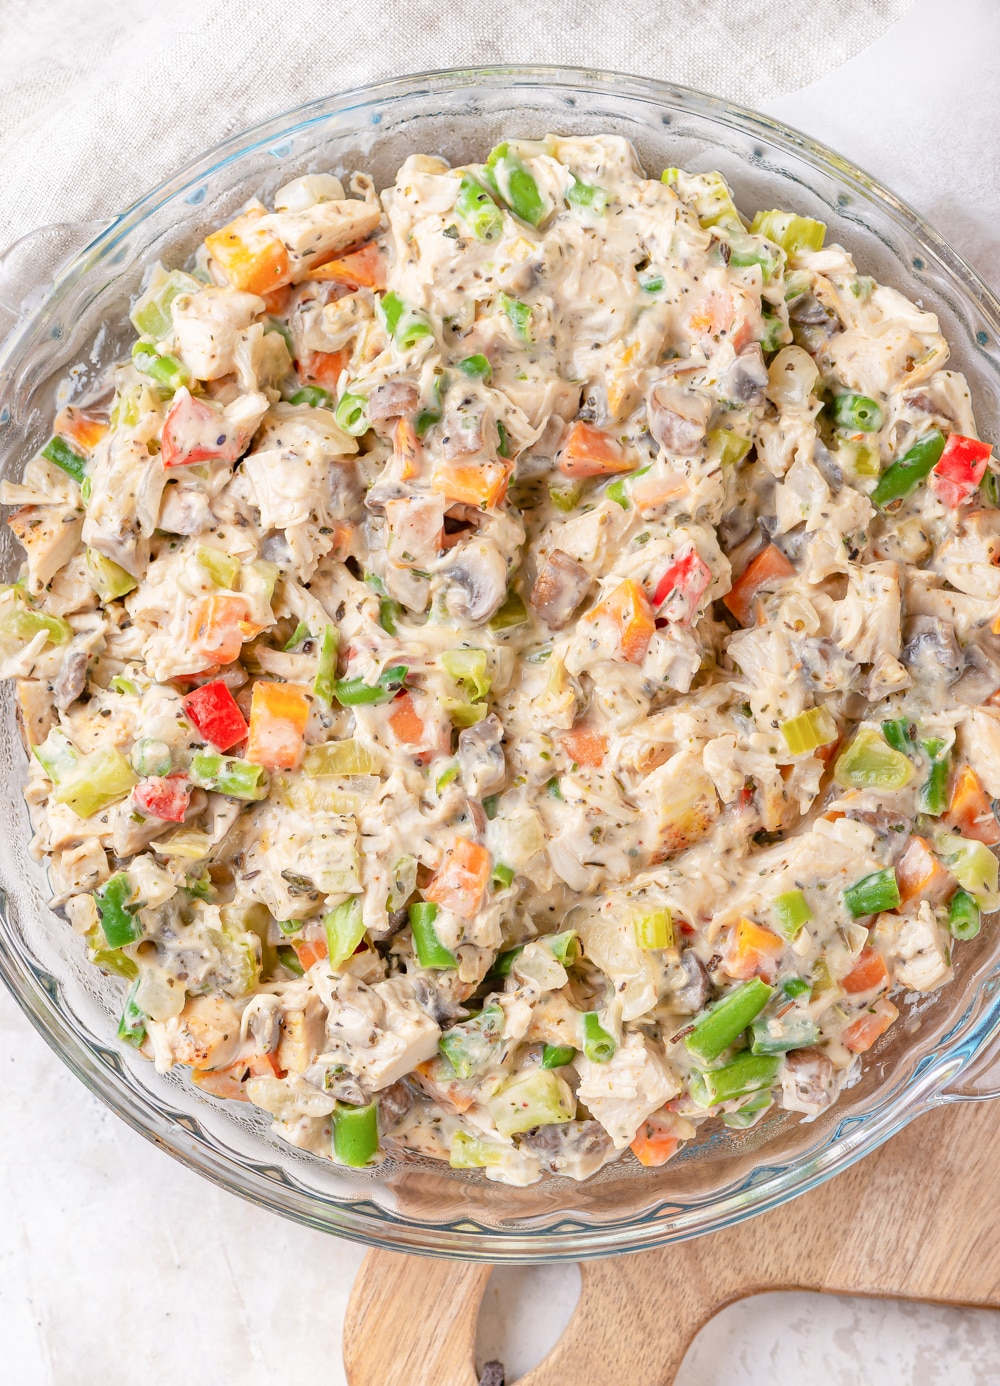 A bowl full of cooked vegetables, chicken, and cream cheese all mixed together.